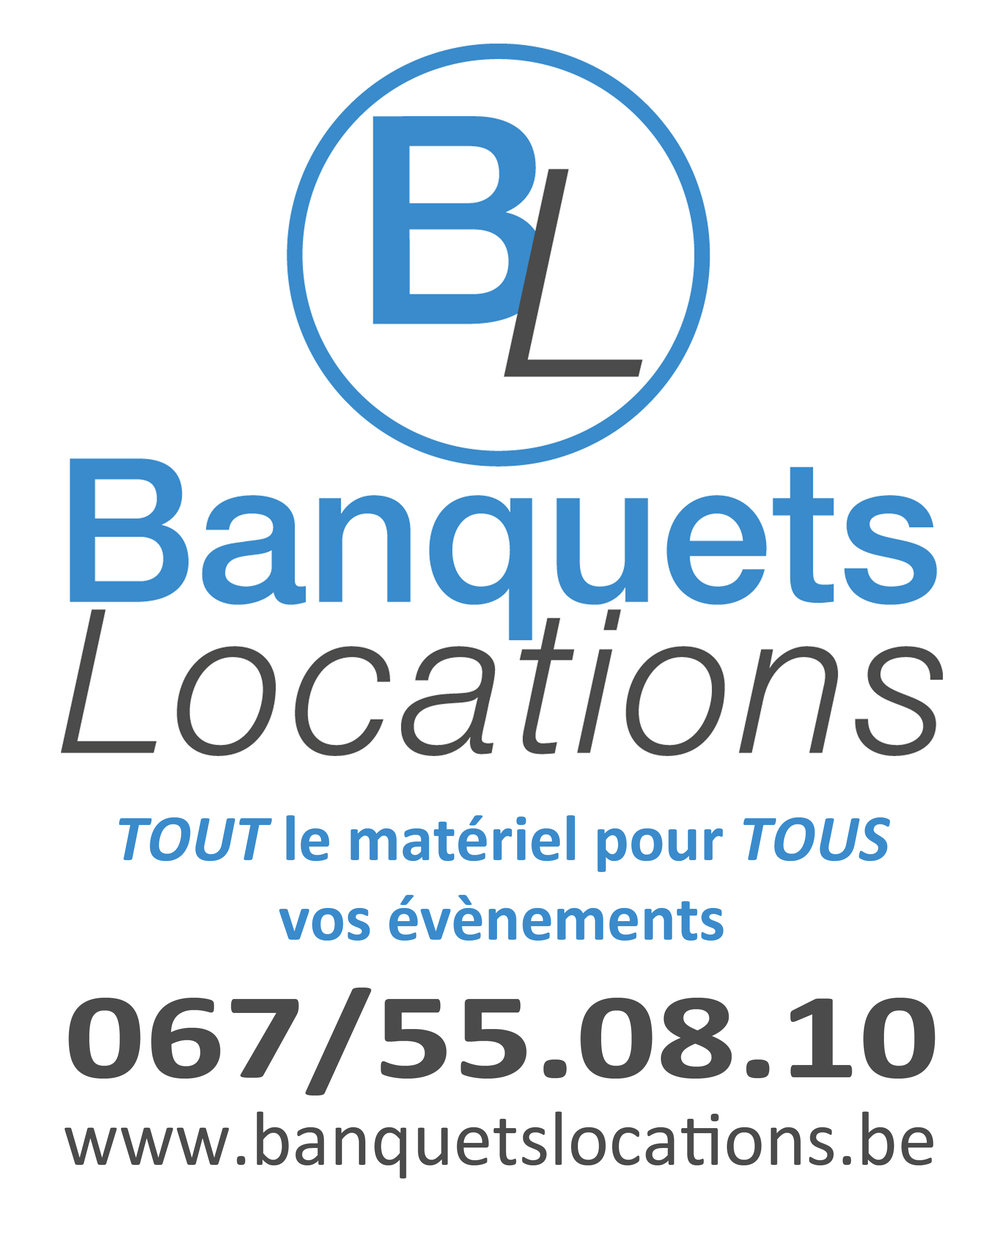 Banquets-Locations.jpg